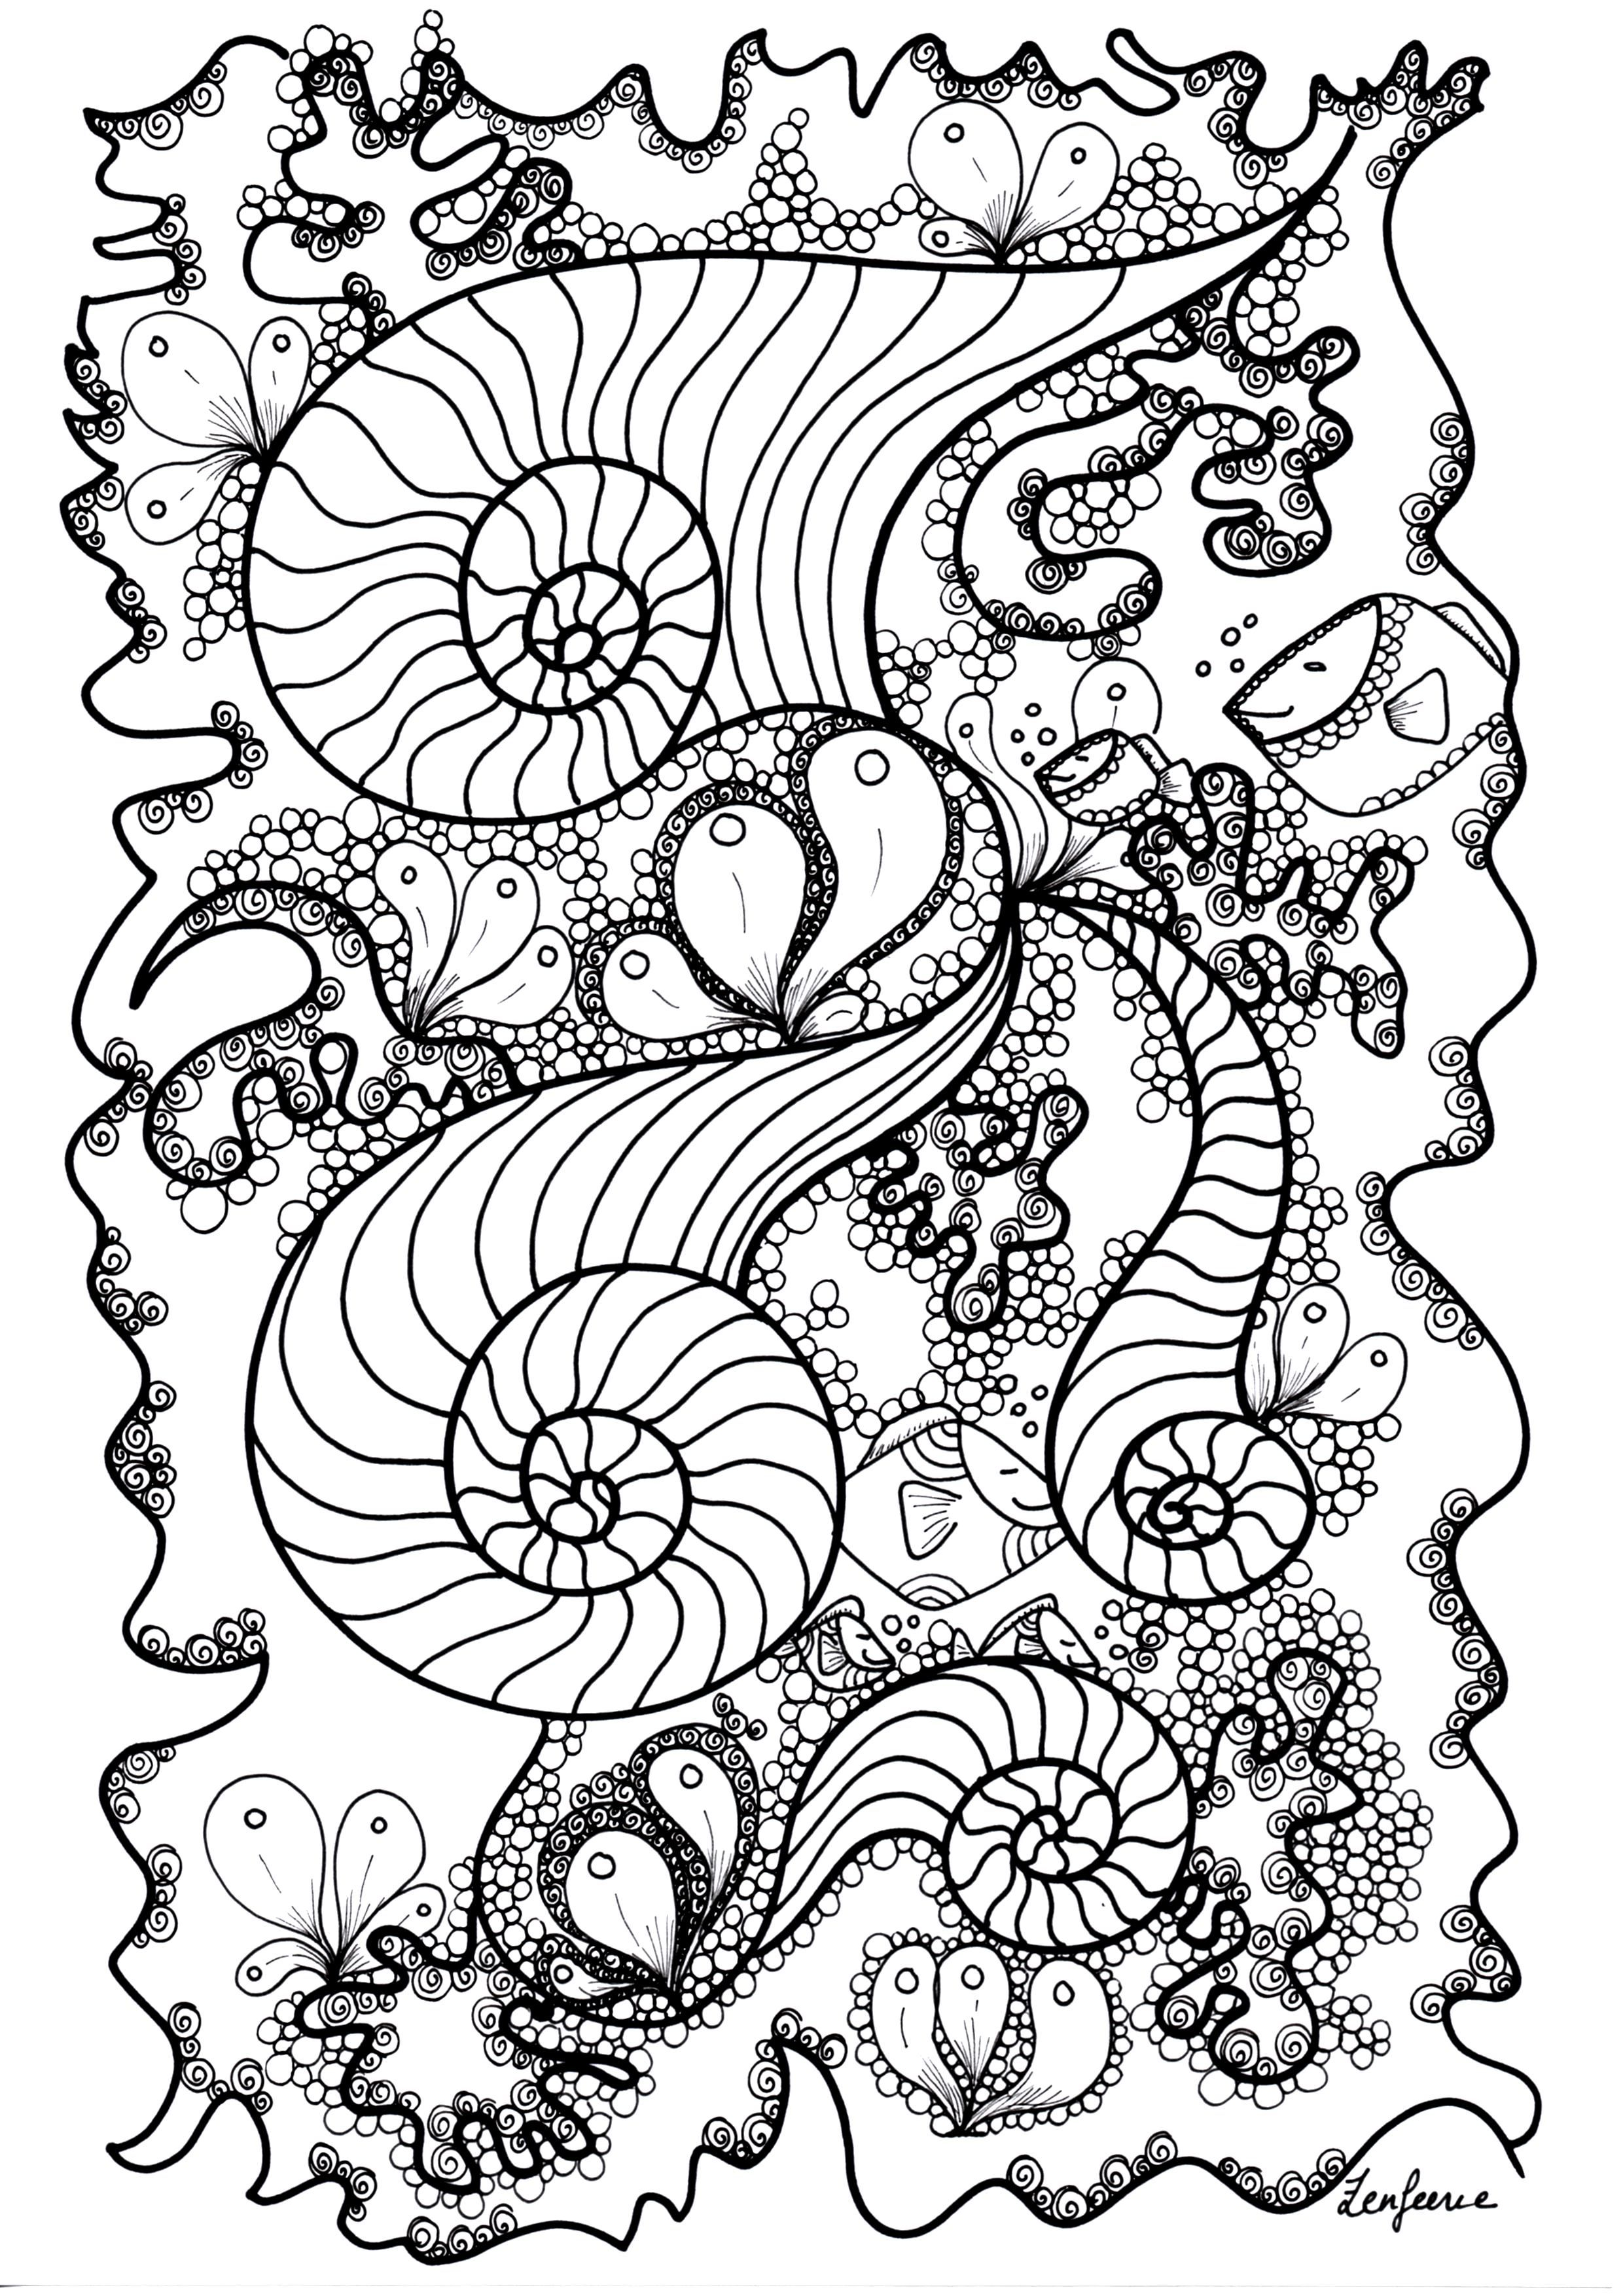 Free coloring page coloriage adulte poisson by zenfeerie fishes hidden in a magnificient - Dessin poisson simple ...